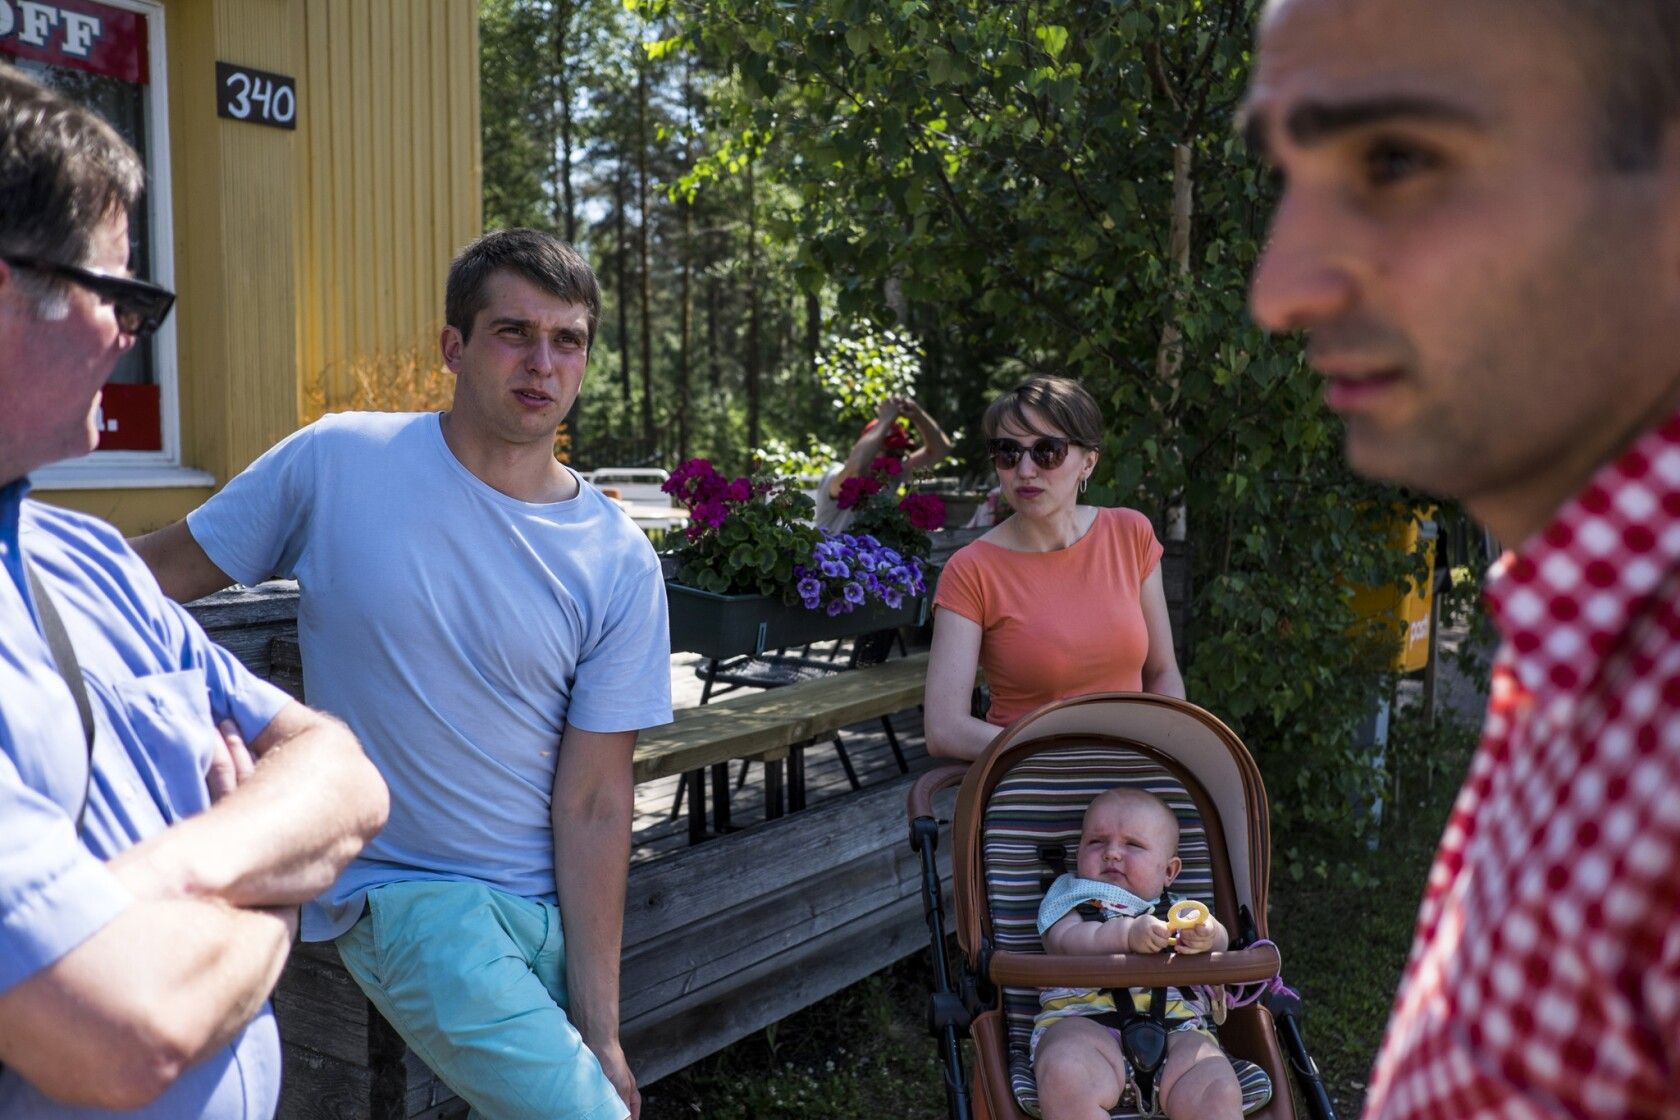 Facing religious persecution in Russia, Jehovah's Witnesses